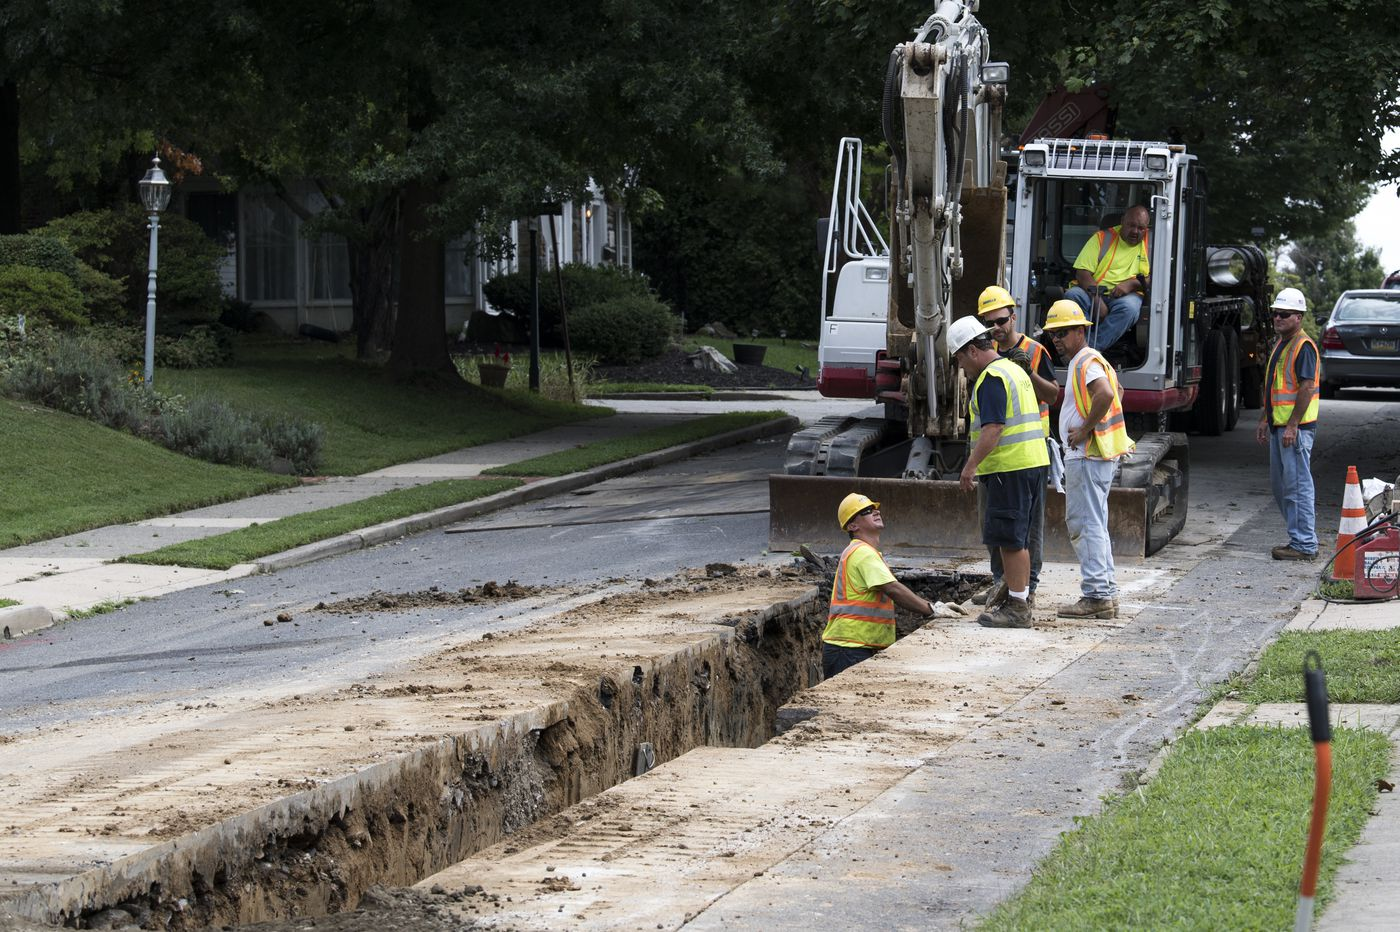 In a record deal, Delaware County sewer system serving 42 towns is sold for $276 million